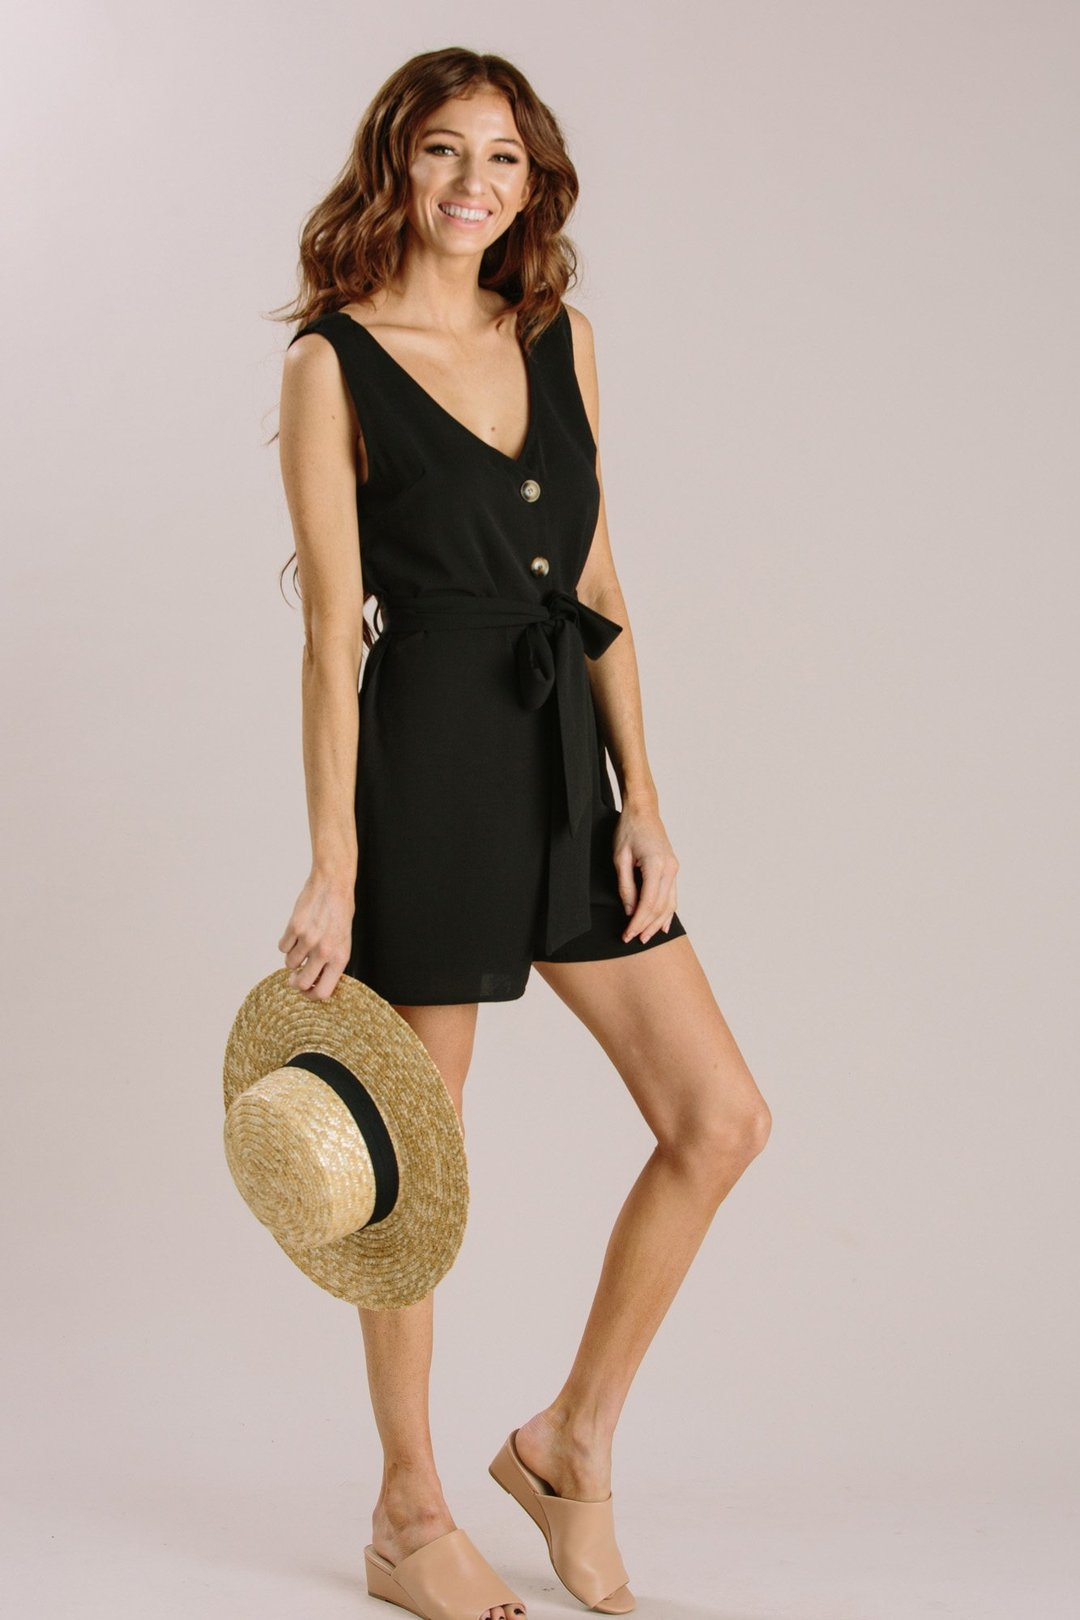 6a4ad2ff0a2b Arielle Black Sleeveless Button Romper - Morning Lavender - https:// morninglavender.com